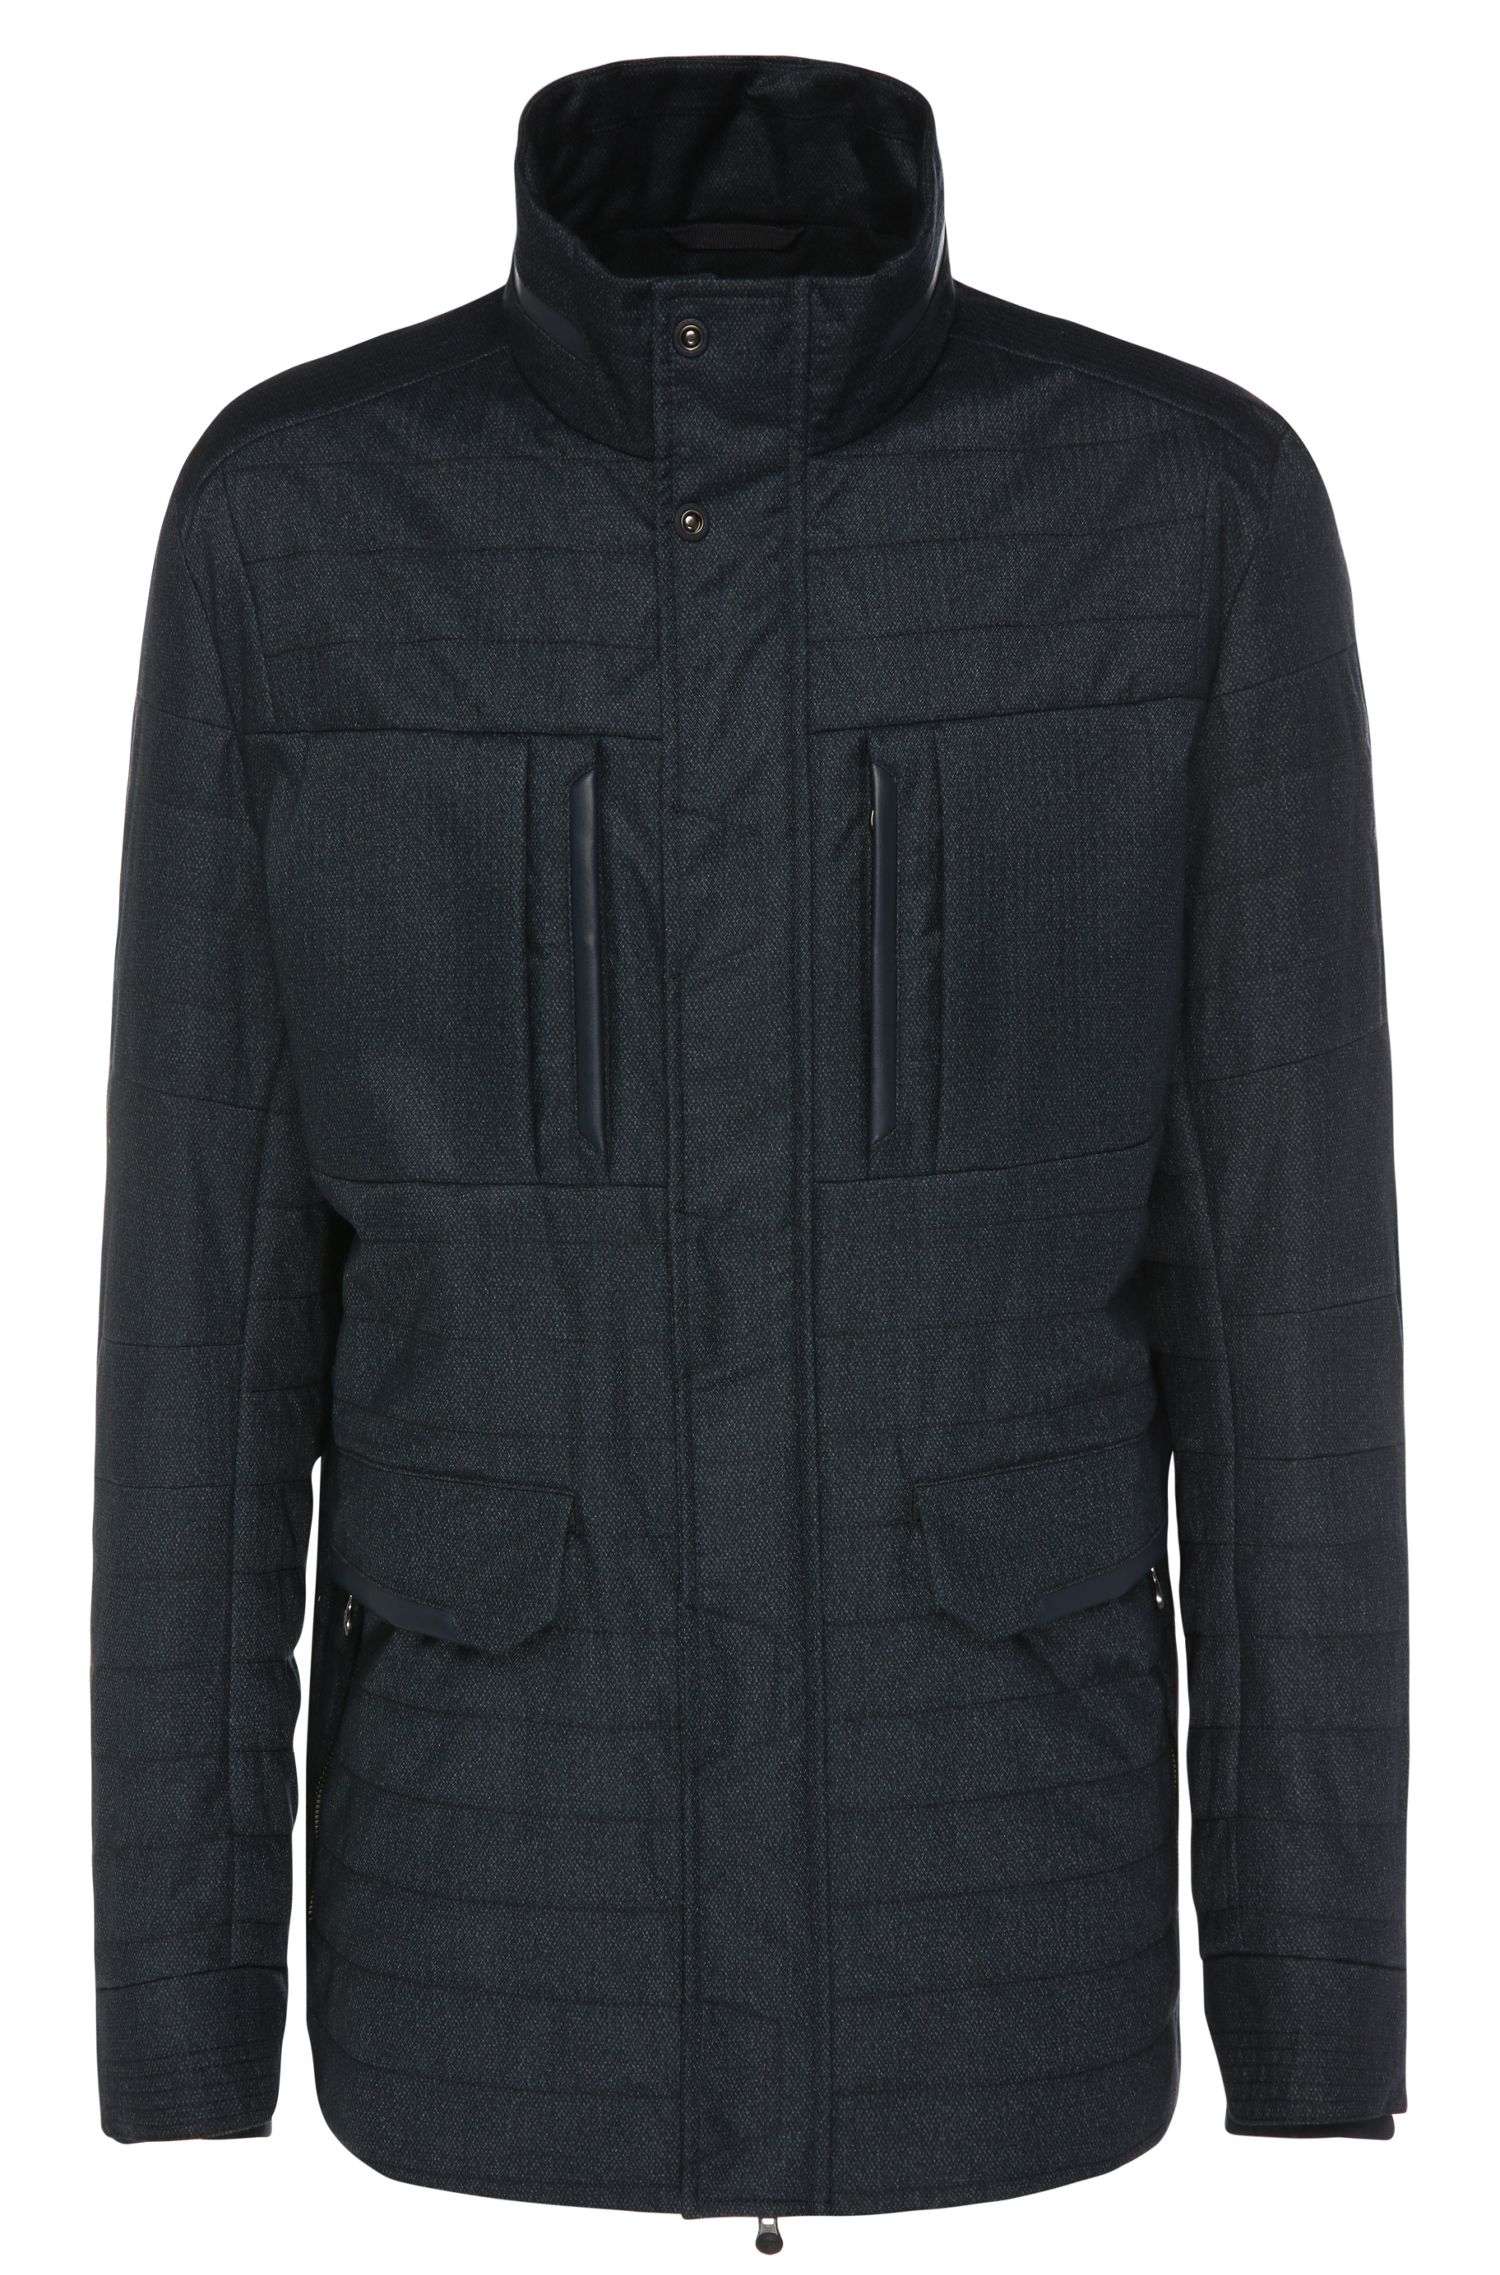 Regular-fit jacket in textured fabric blend: 'B-Corkins'